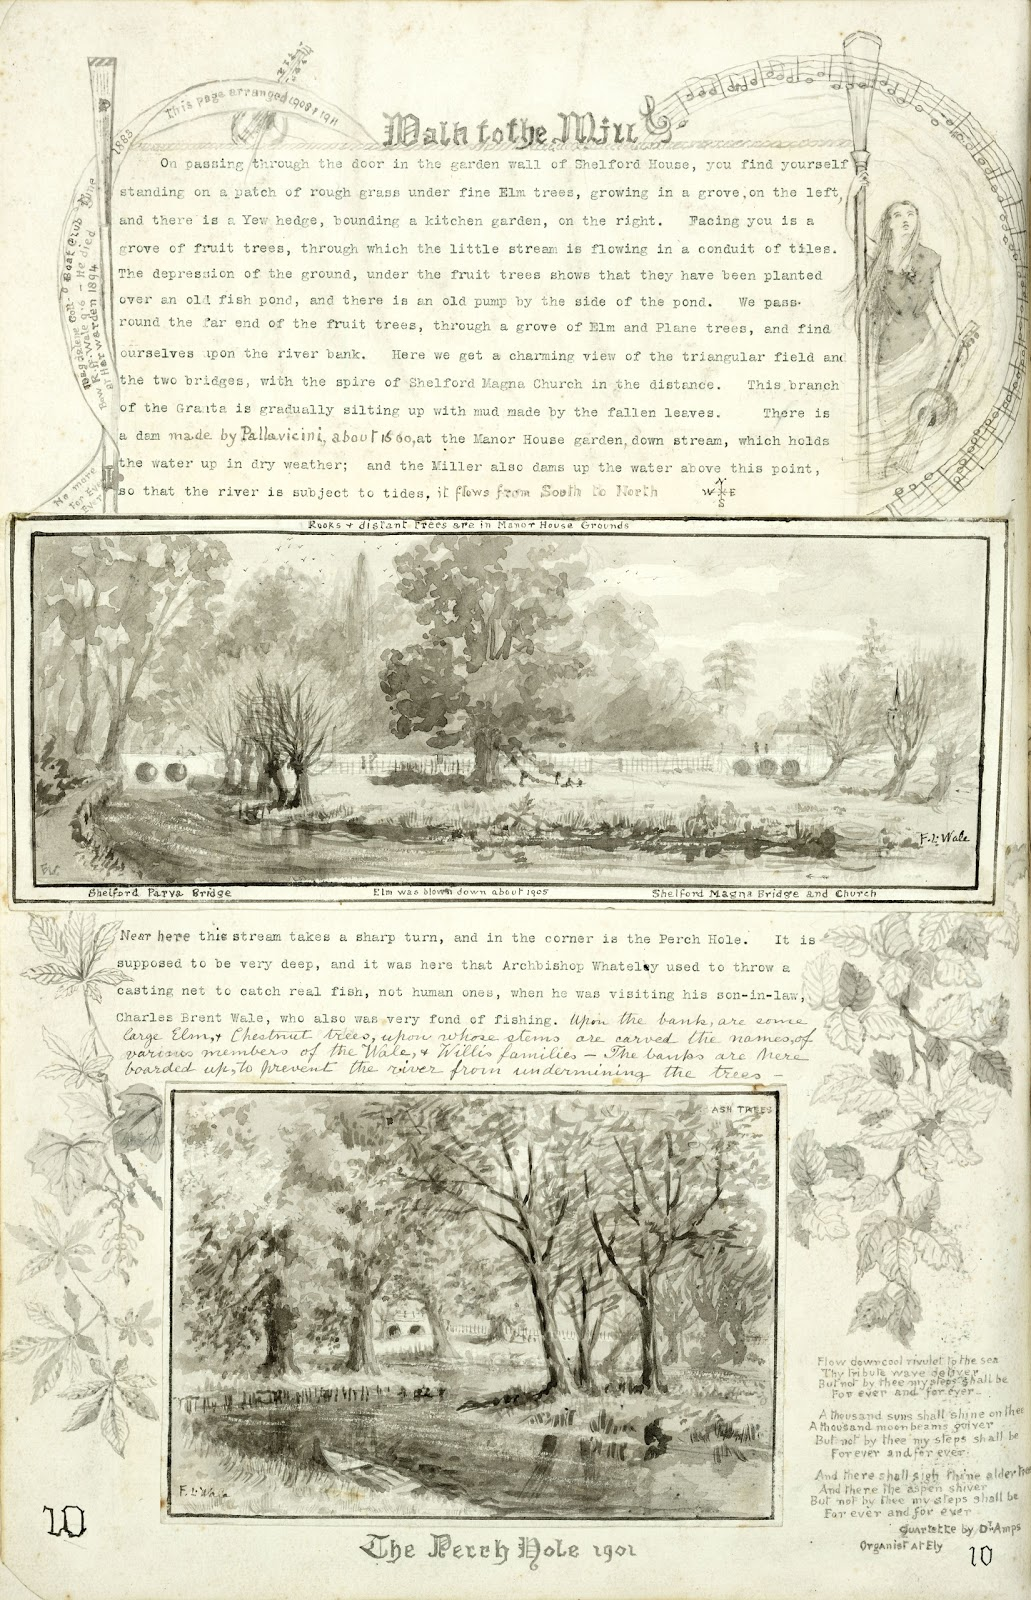 A Record of Shelford Parva by Fanny Wale P10 fo. 11v, page 10: At the top of the page is a description of the 'path to the water mill'. A watercolour is beneath it of Shelford Parva and Magna bridges. Another description of the stream is below this. At the bottom is a black and white watercolour of some ash trees at the perch hole 1901. A quartette by Dr. Amas is written in the right hand corner with a watercolour of some leaves. The page was arranged in 1908-1911. [fo.10]